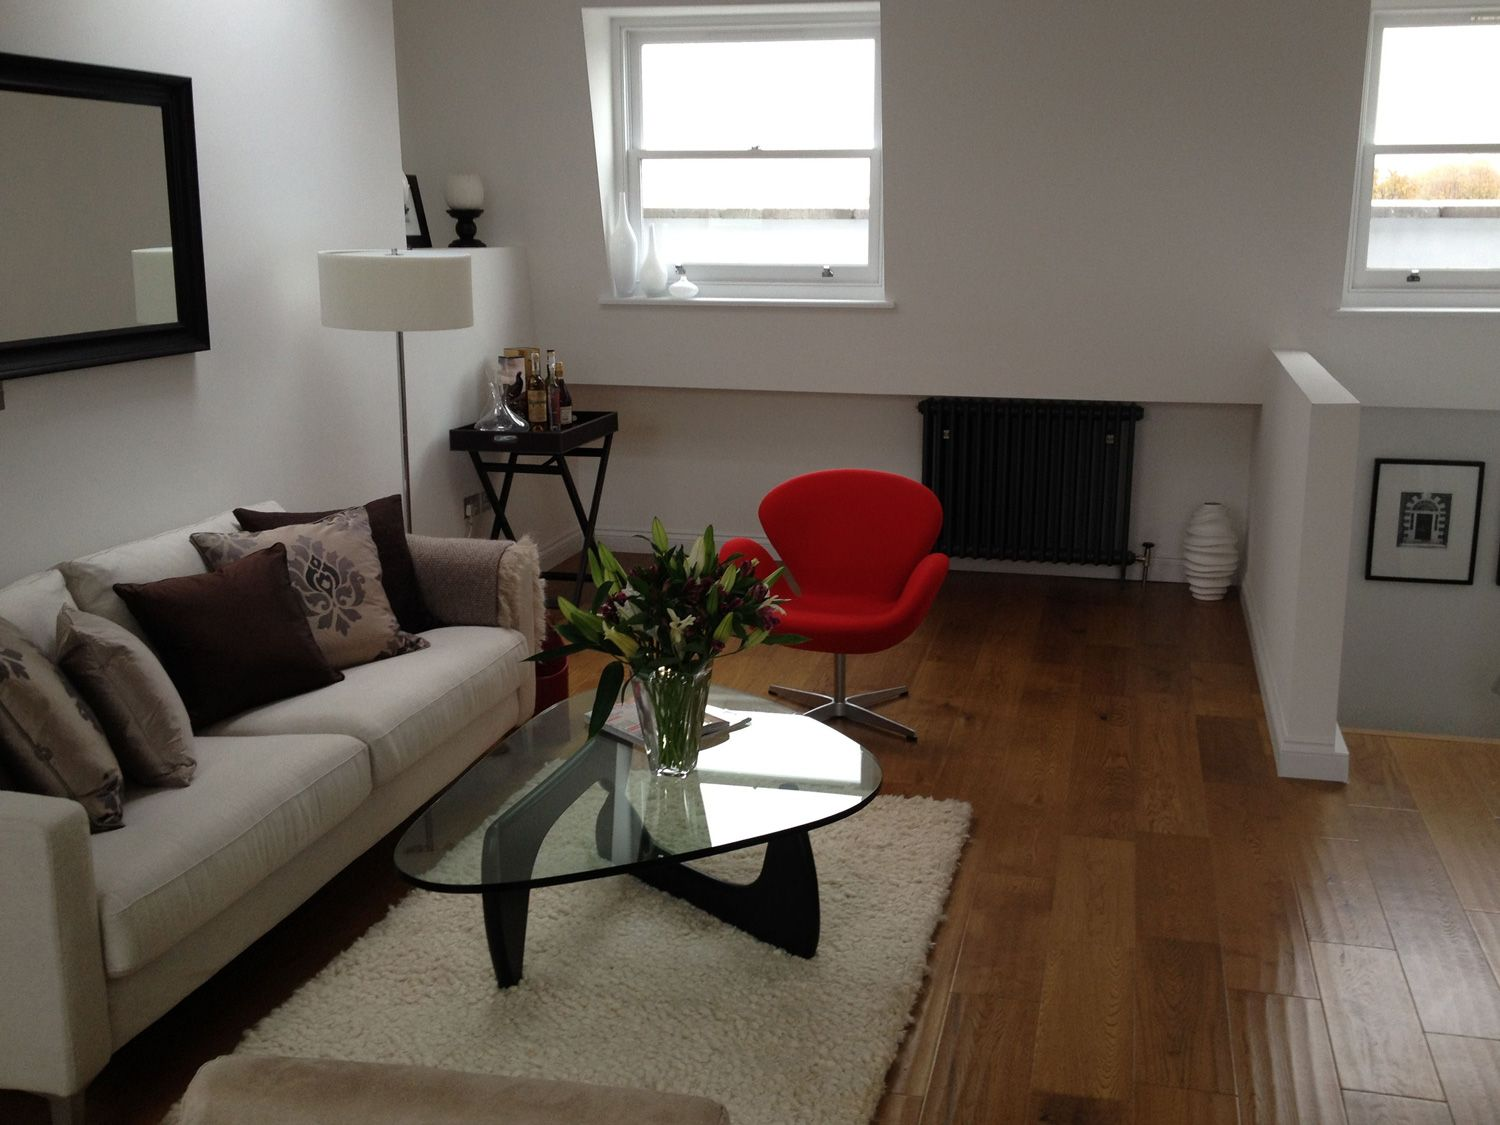 Westbourne Living Room #Propertystyling